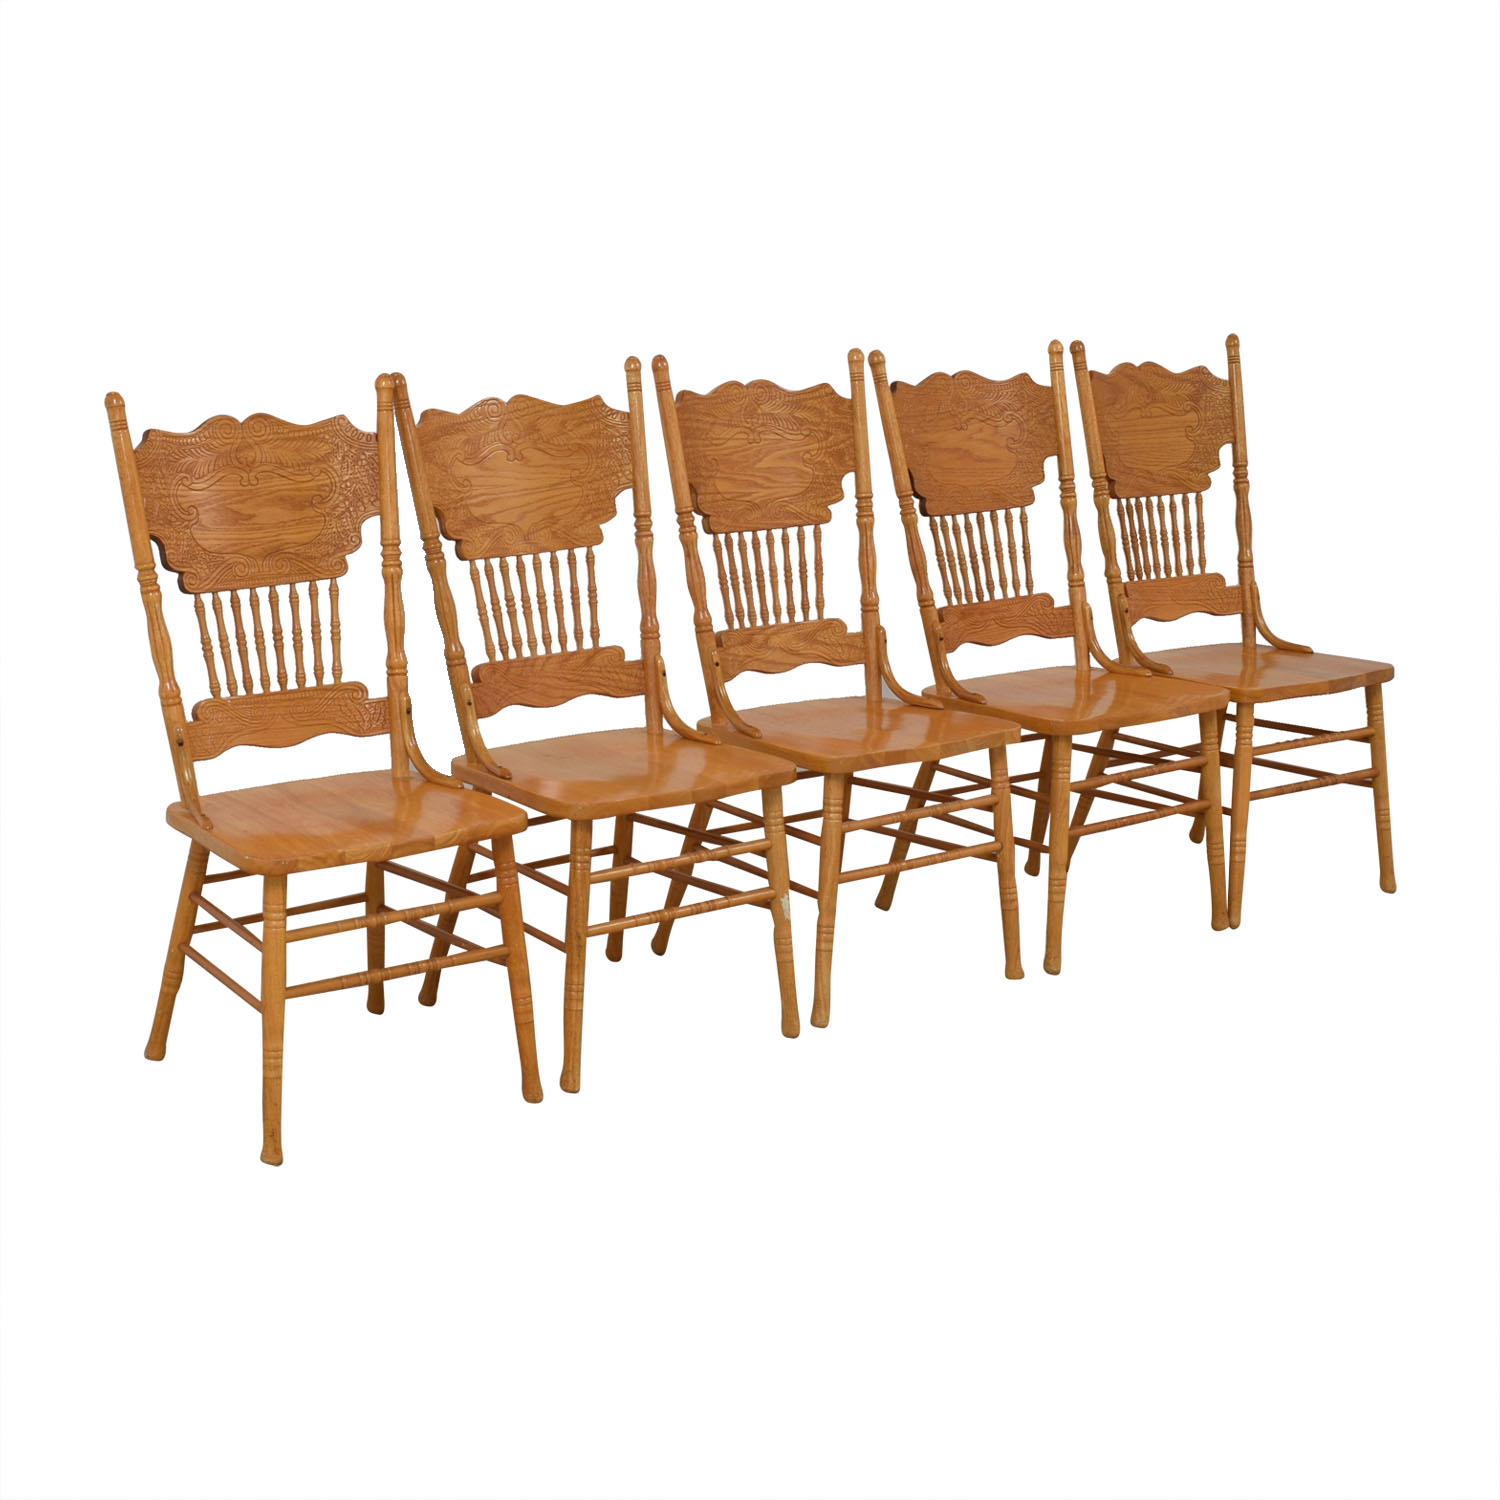 Wooden Dining Chairs second hand